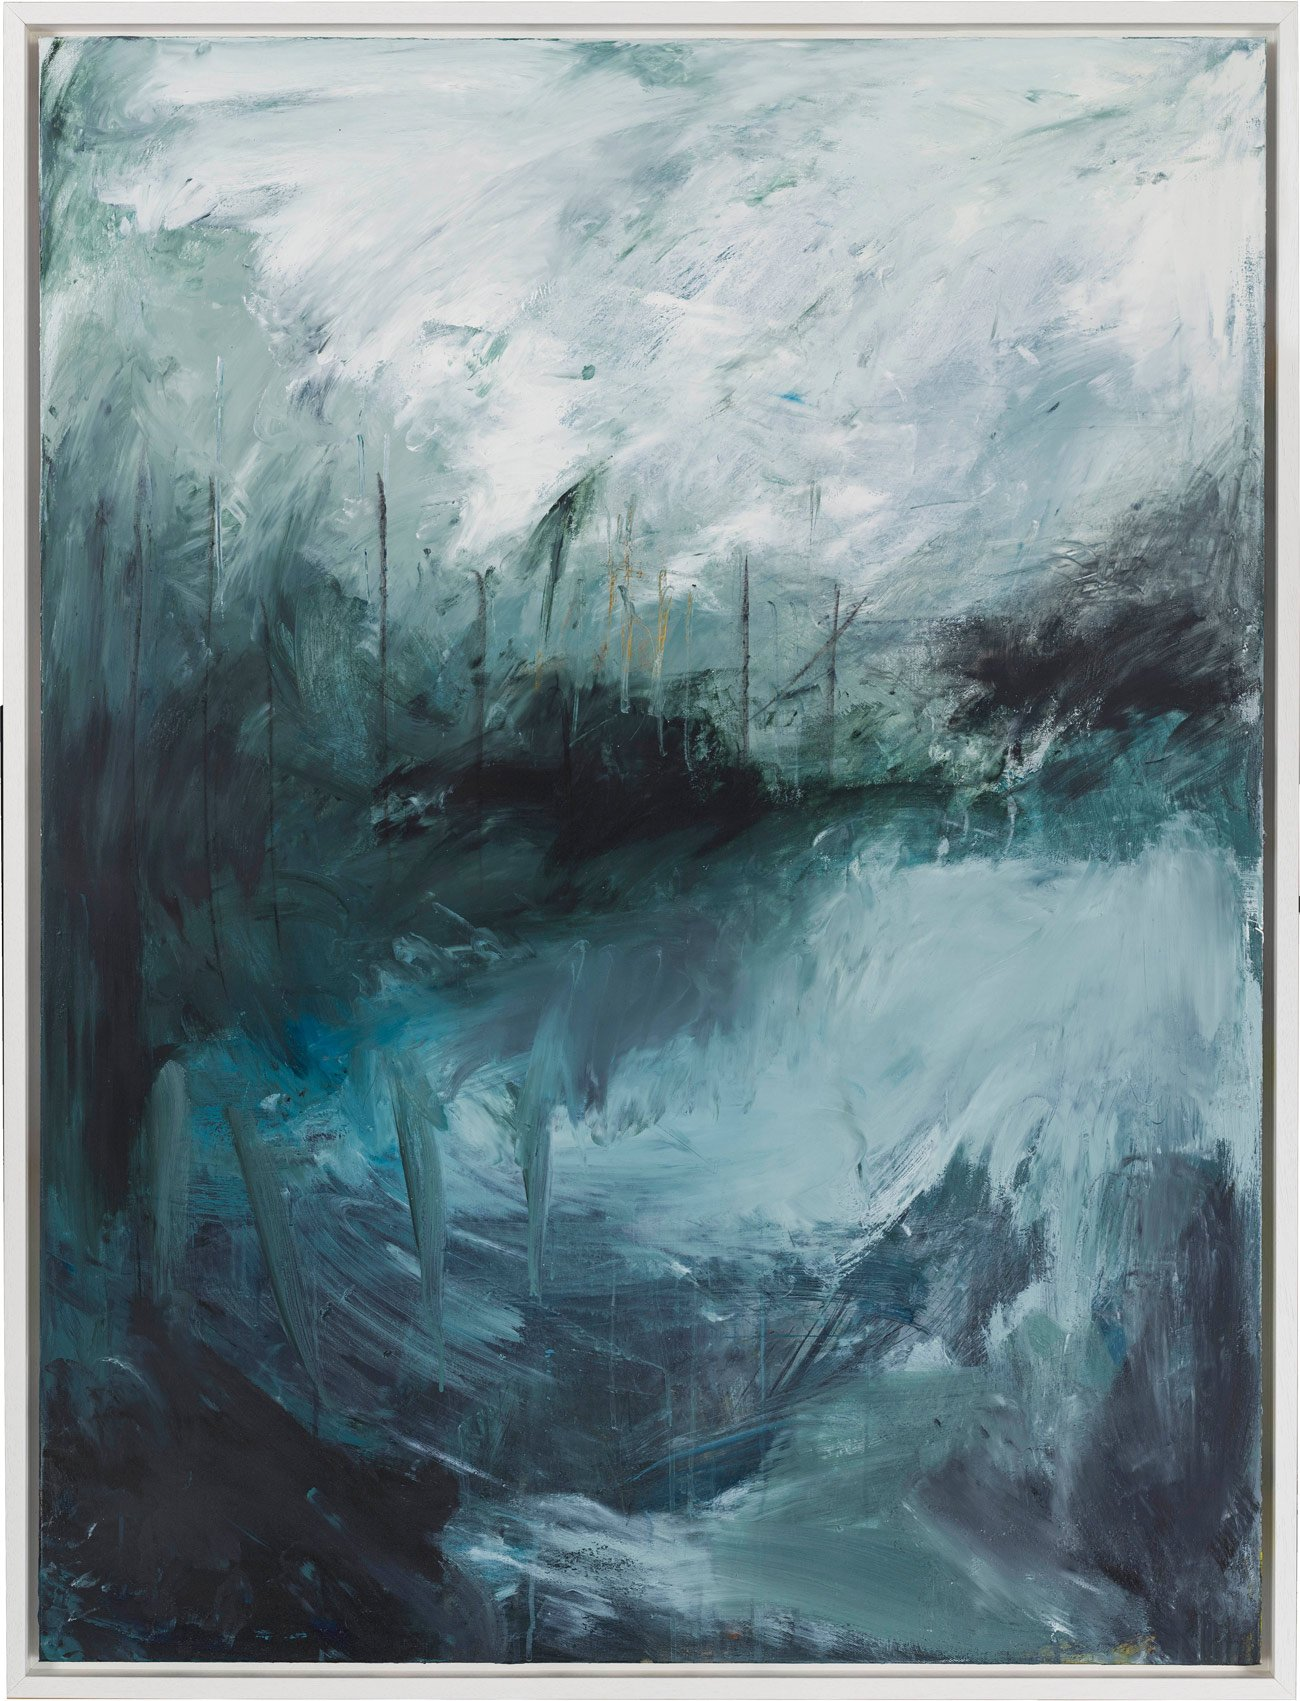 ArtStory BethHolmes The Masts in the Bay BETHANY HOLMES 90cm x 120cm web